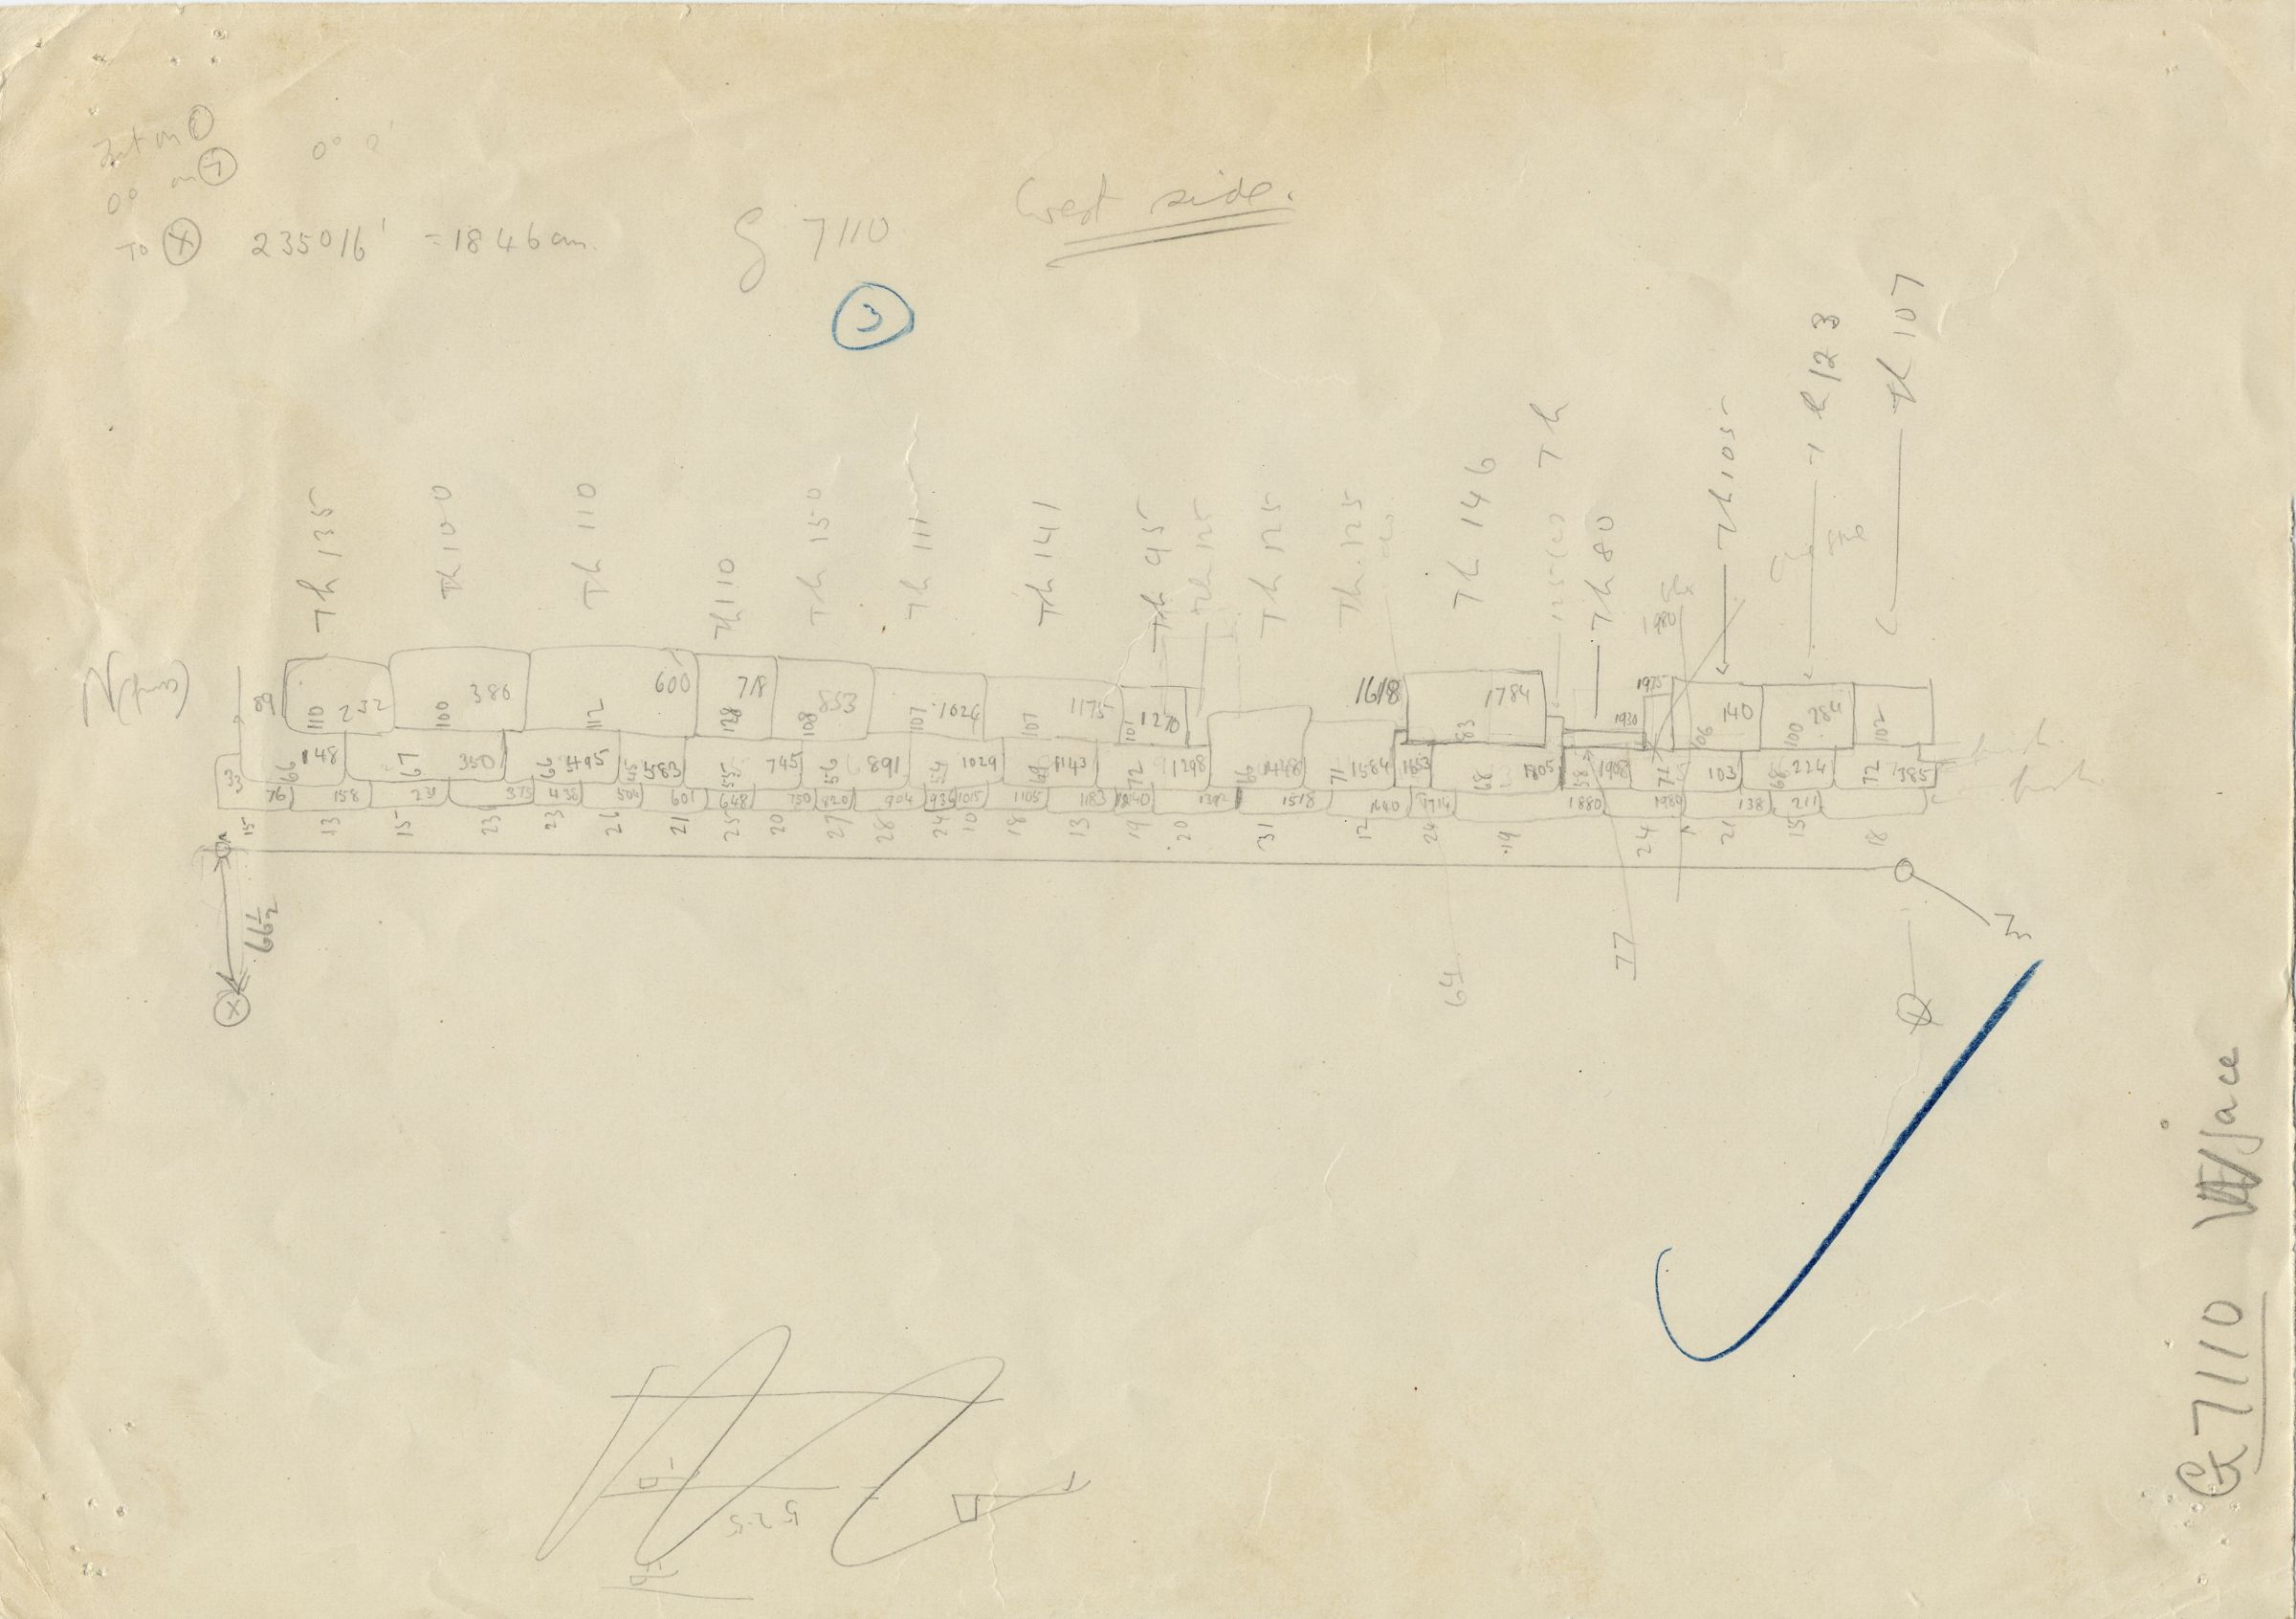 Maps and plans: G 7110-7120: G 7110, Sketch drawing of west face